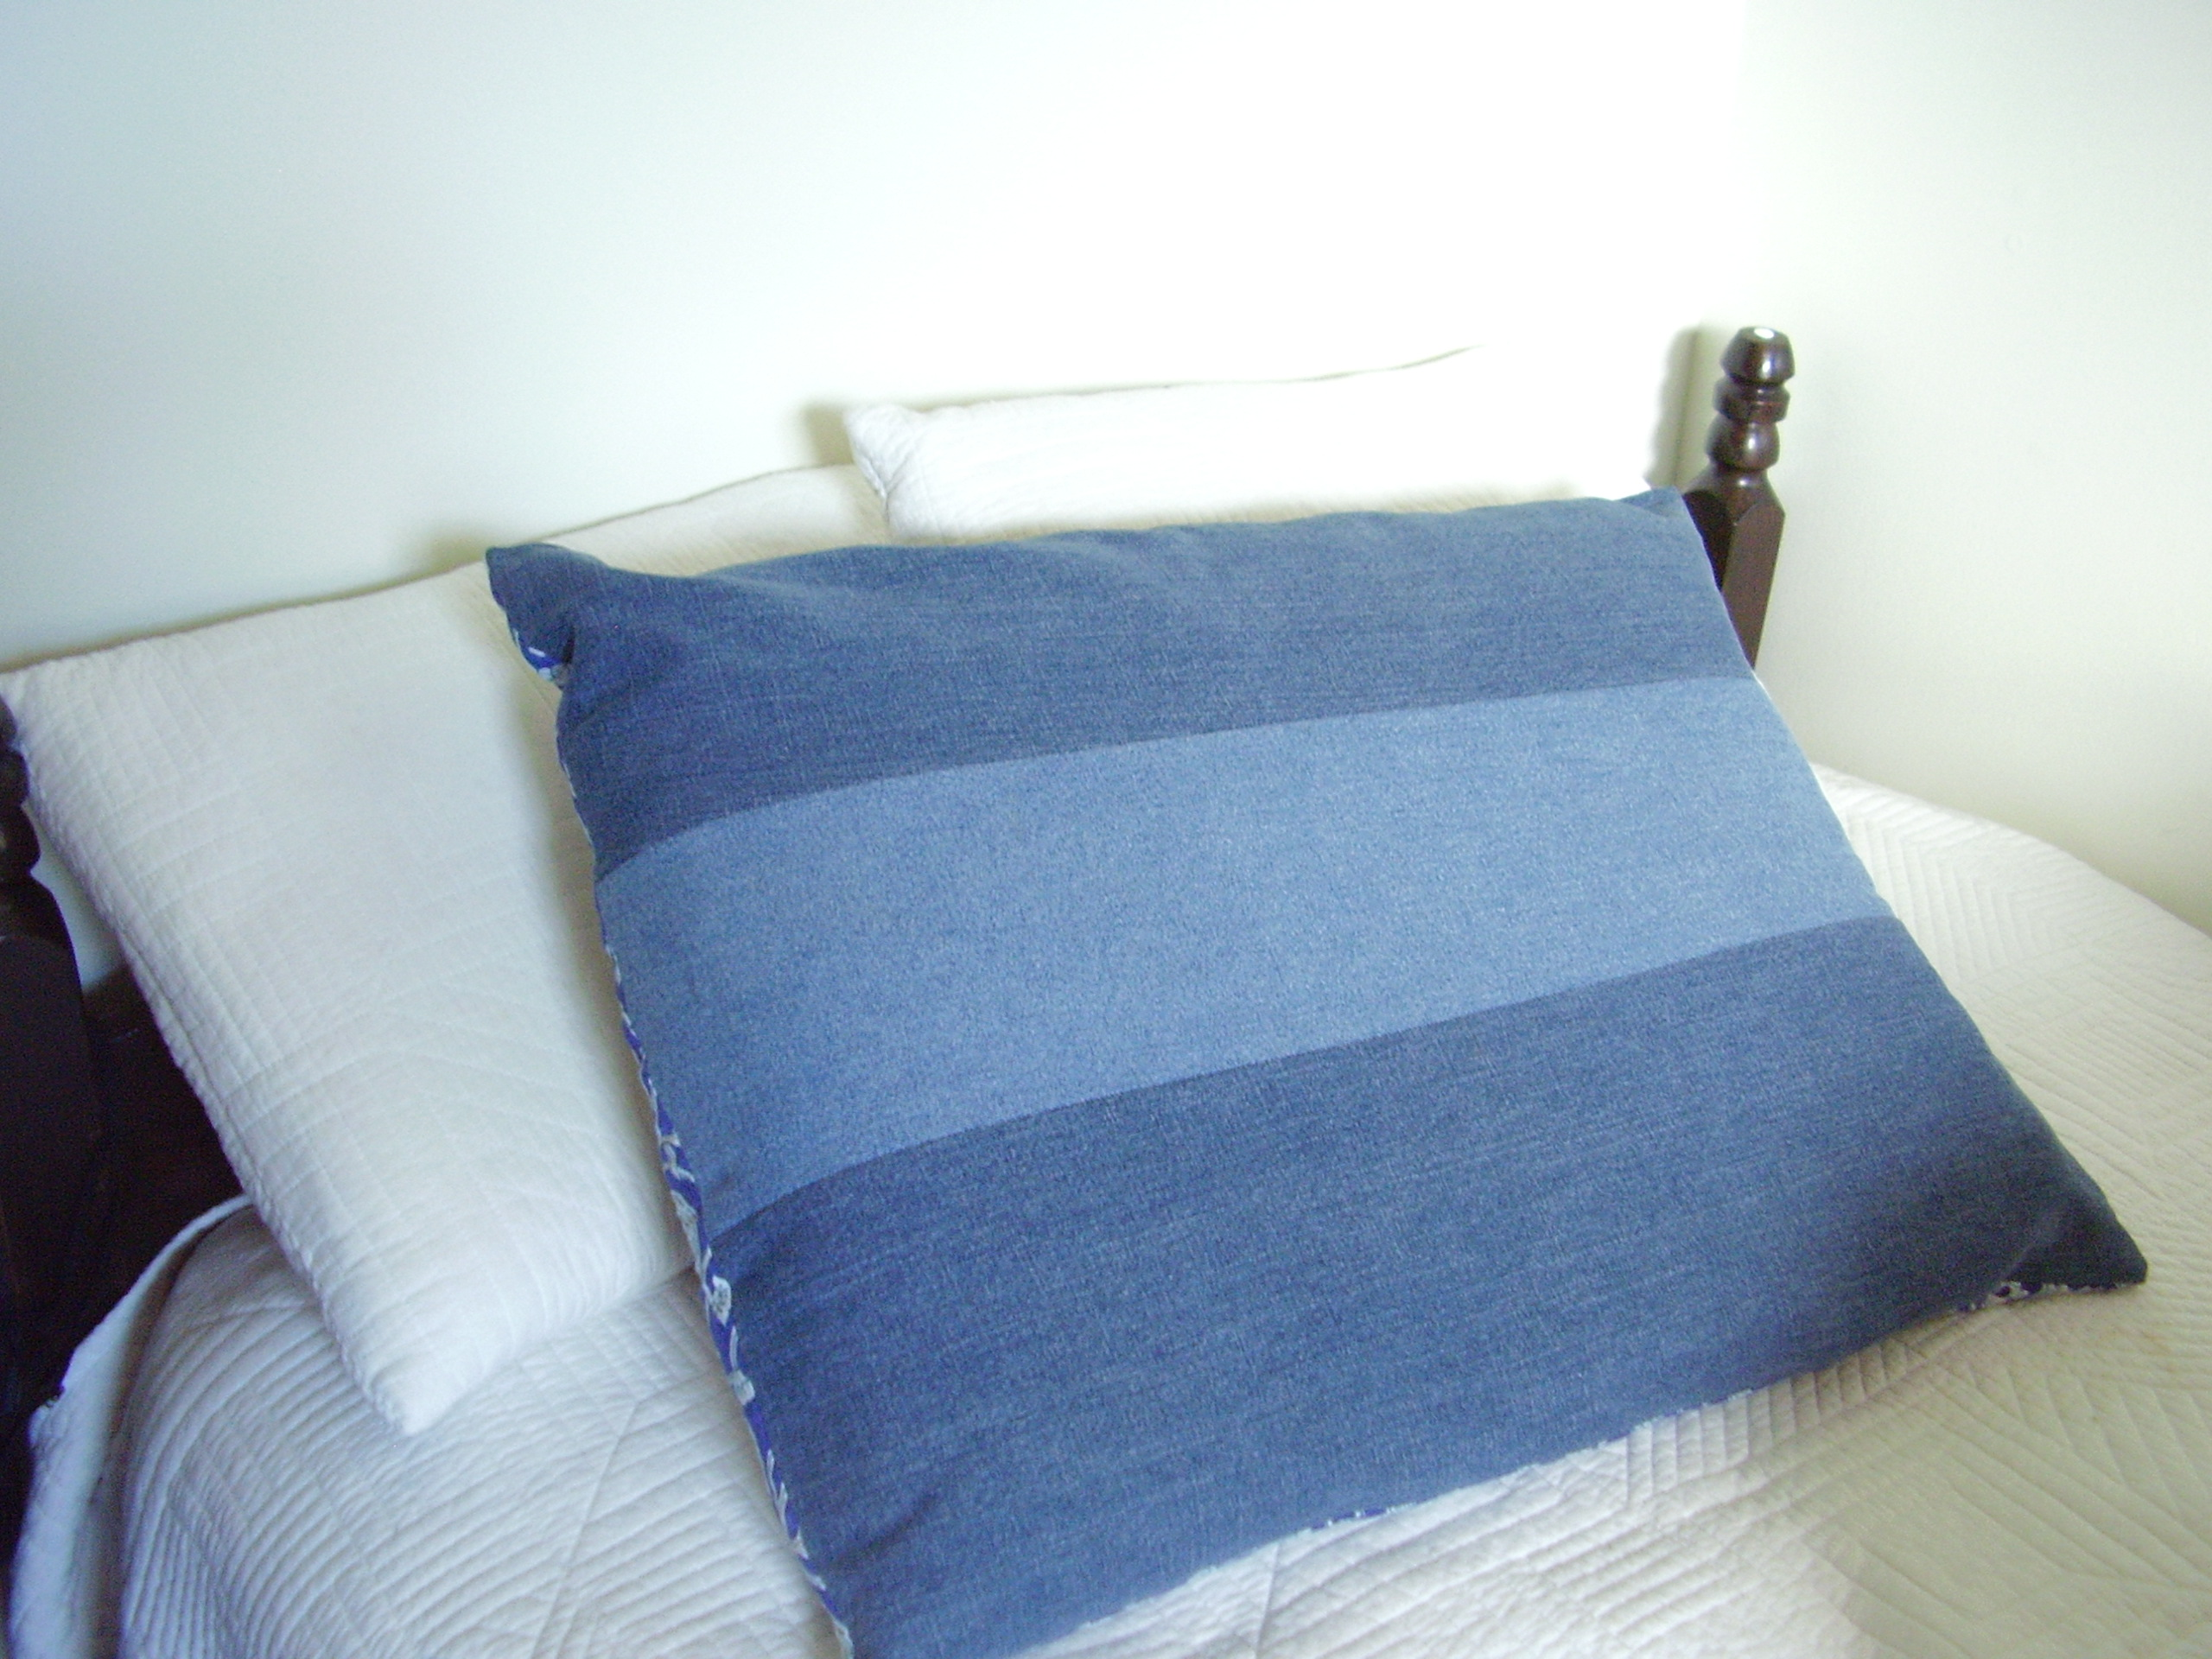 three cushion sofa low profile sofas diy denim pillow cover » preschool toolkit